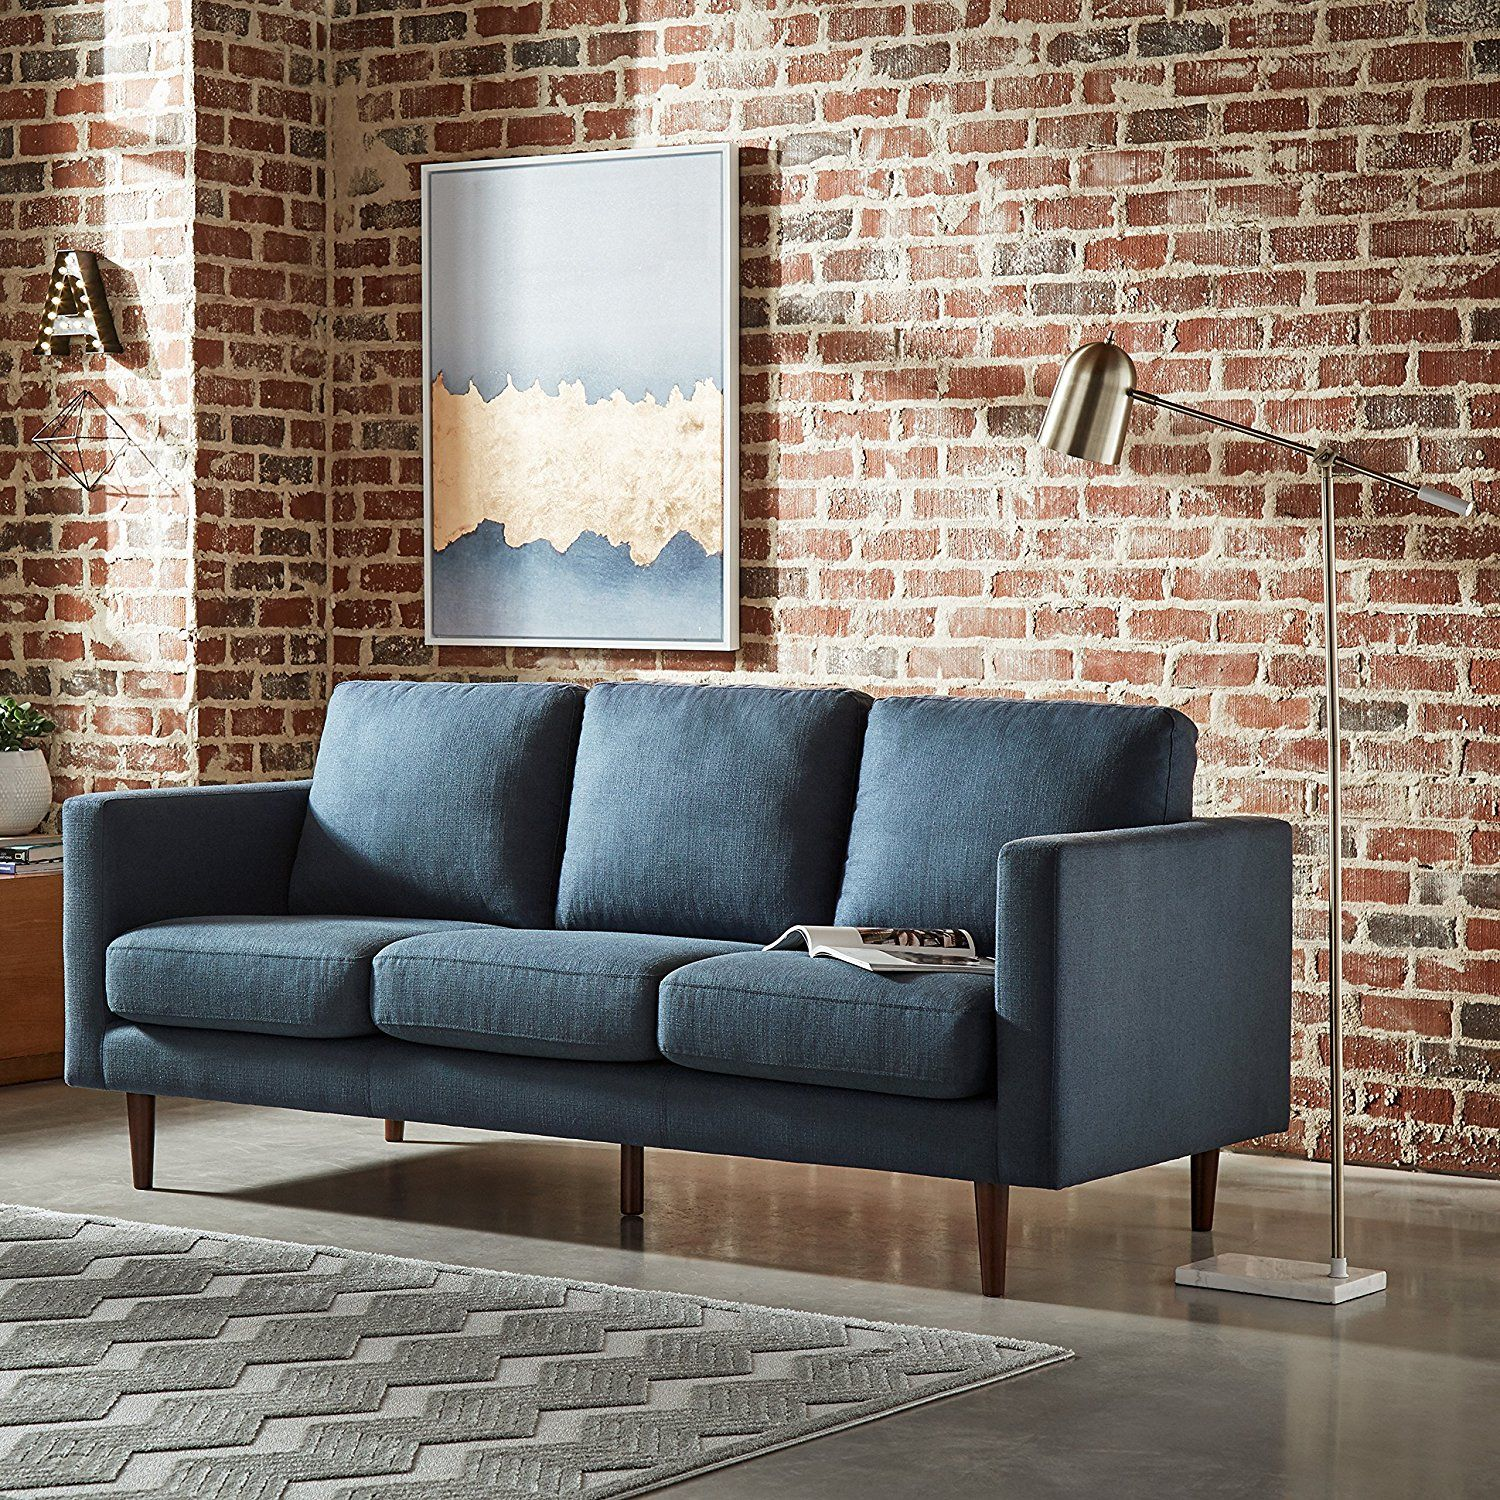 Amazoncom Rivet Revolve Modern Sofa, 80 W, Denim Kitchen